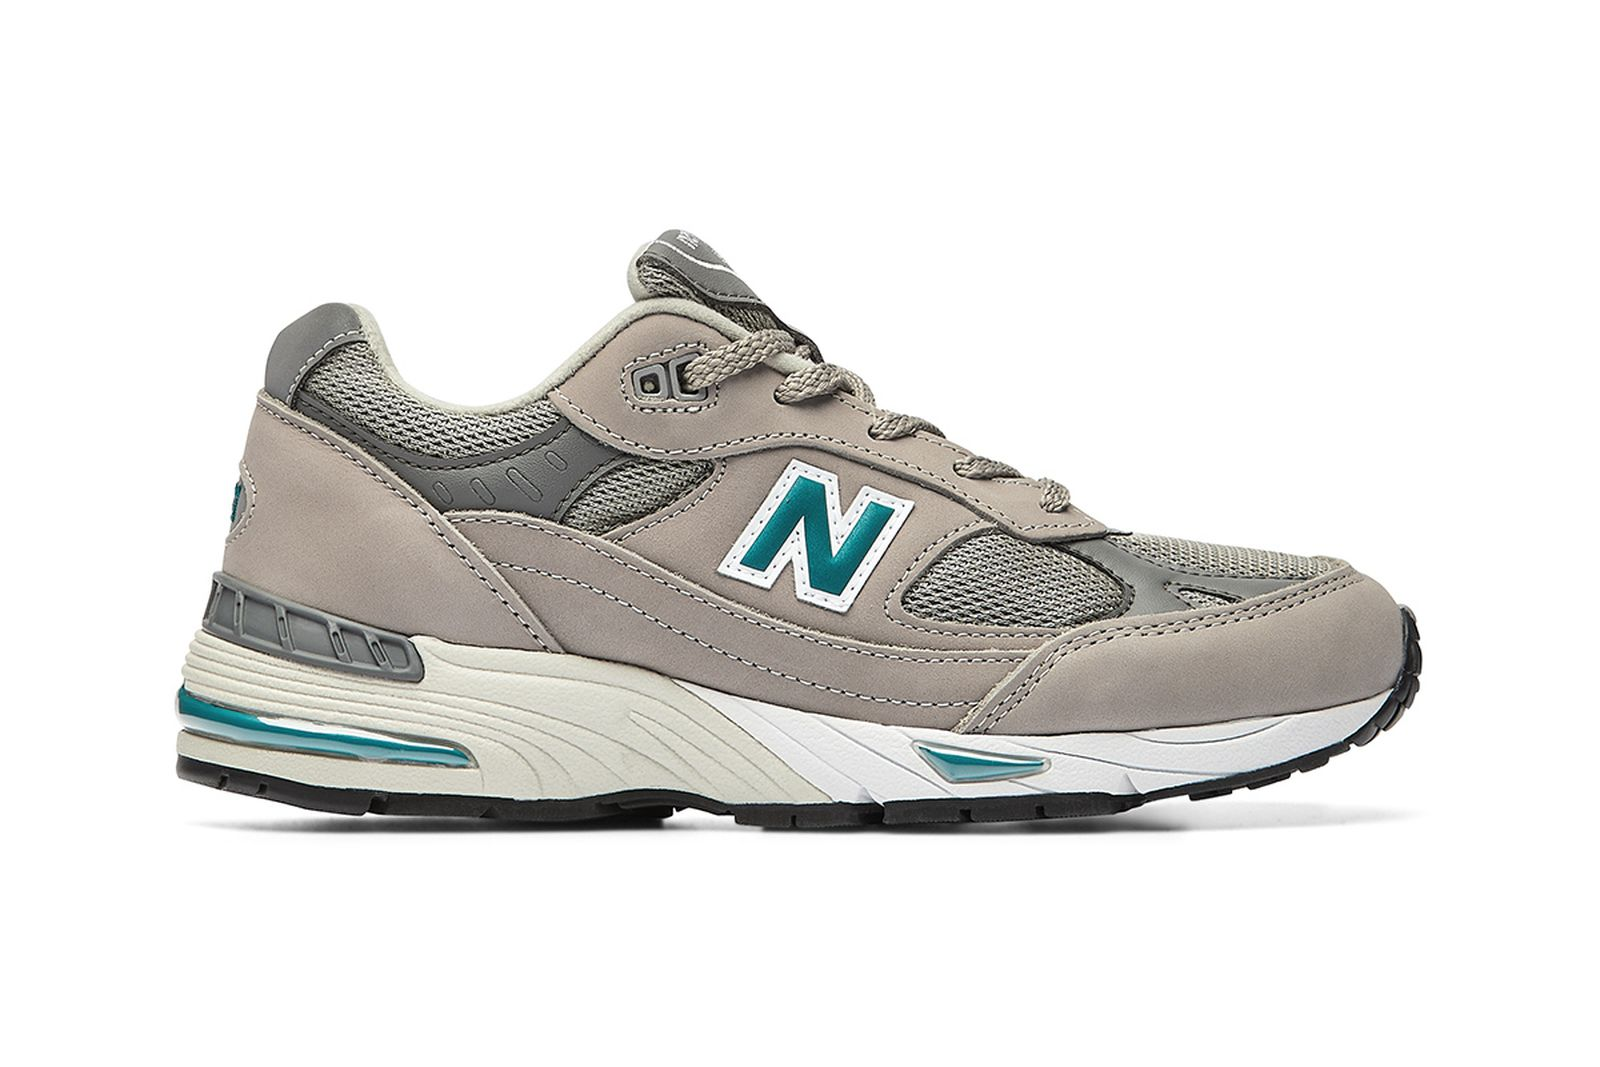 new-balance-991-anniversary-pack-release-date-price-05